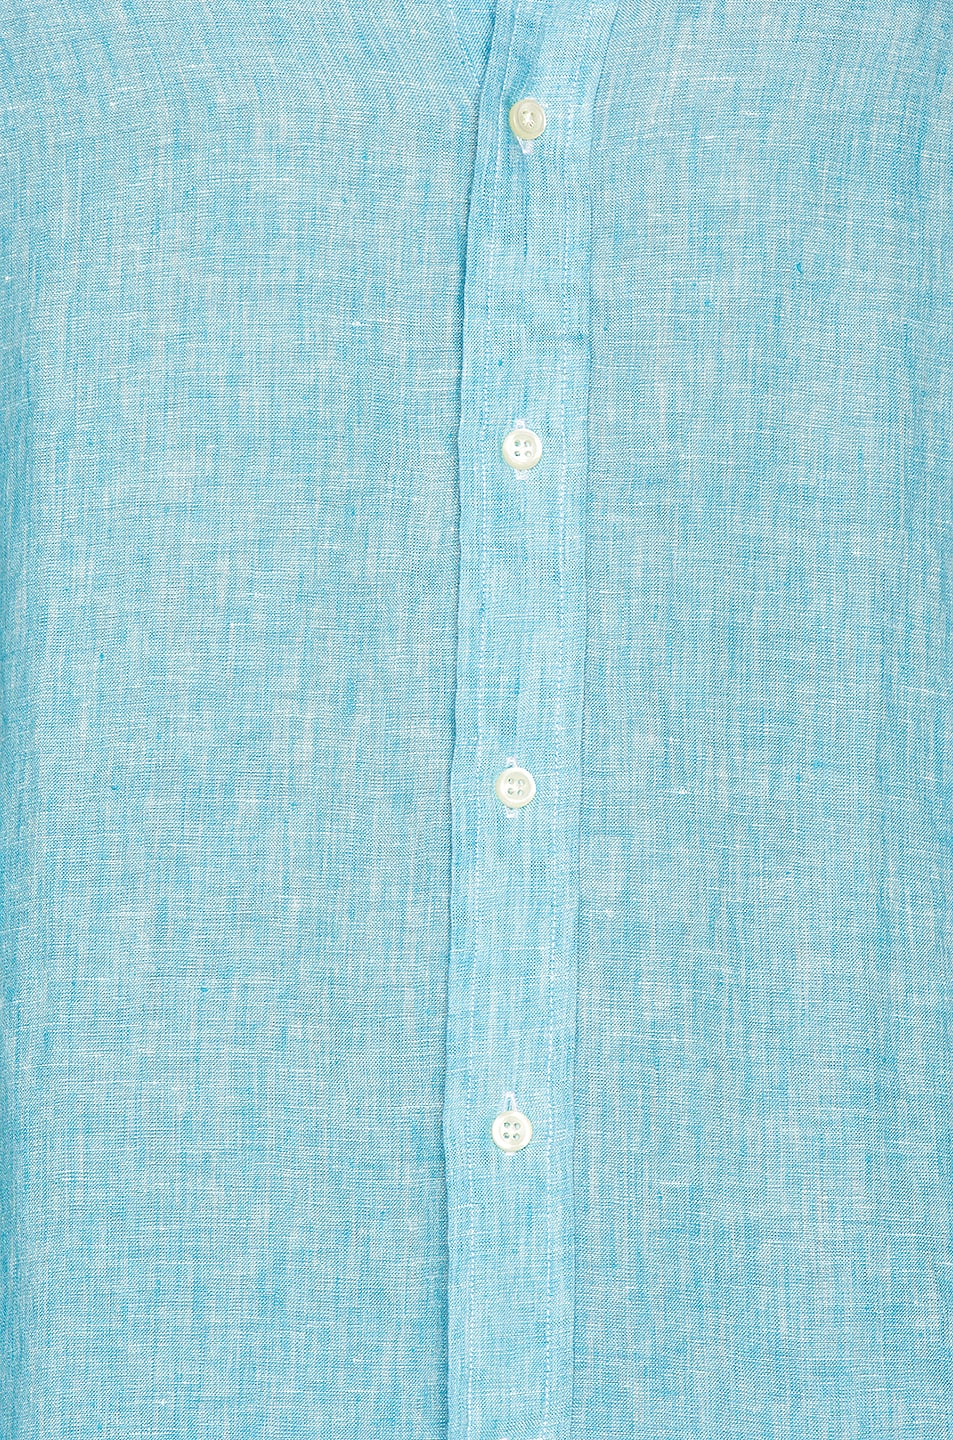 Image 5 of Polo Ralph Lauren Linen Chambray Long Sleeve Button Up Shirt in 4366F Turquoise